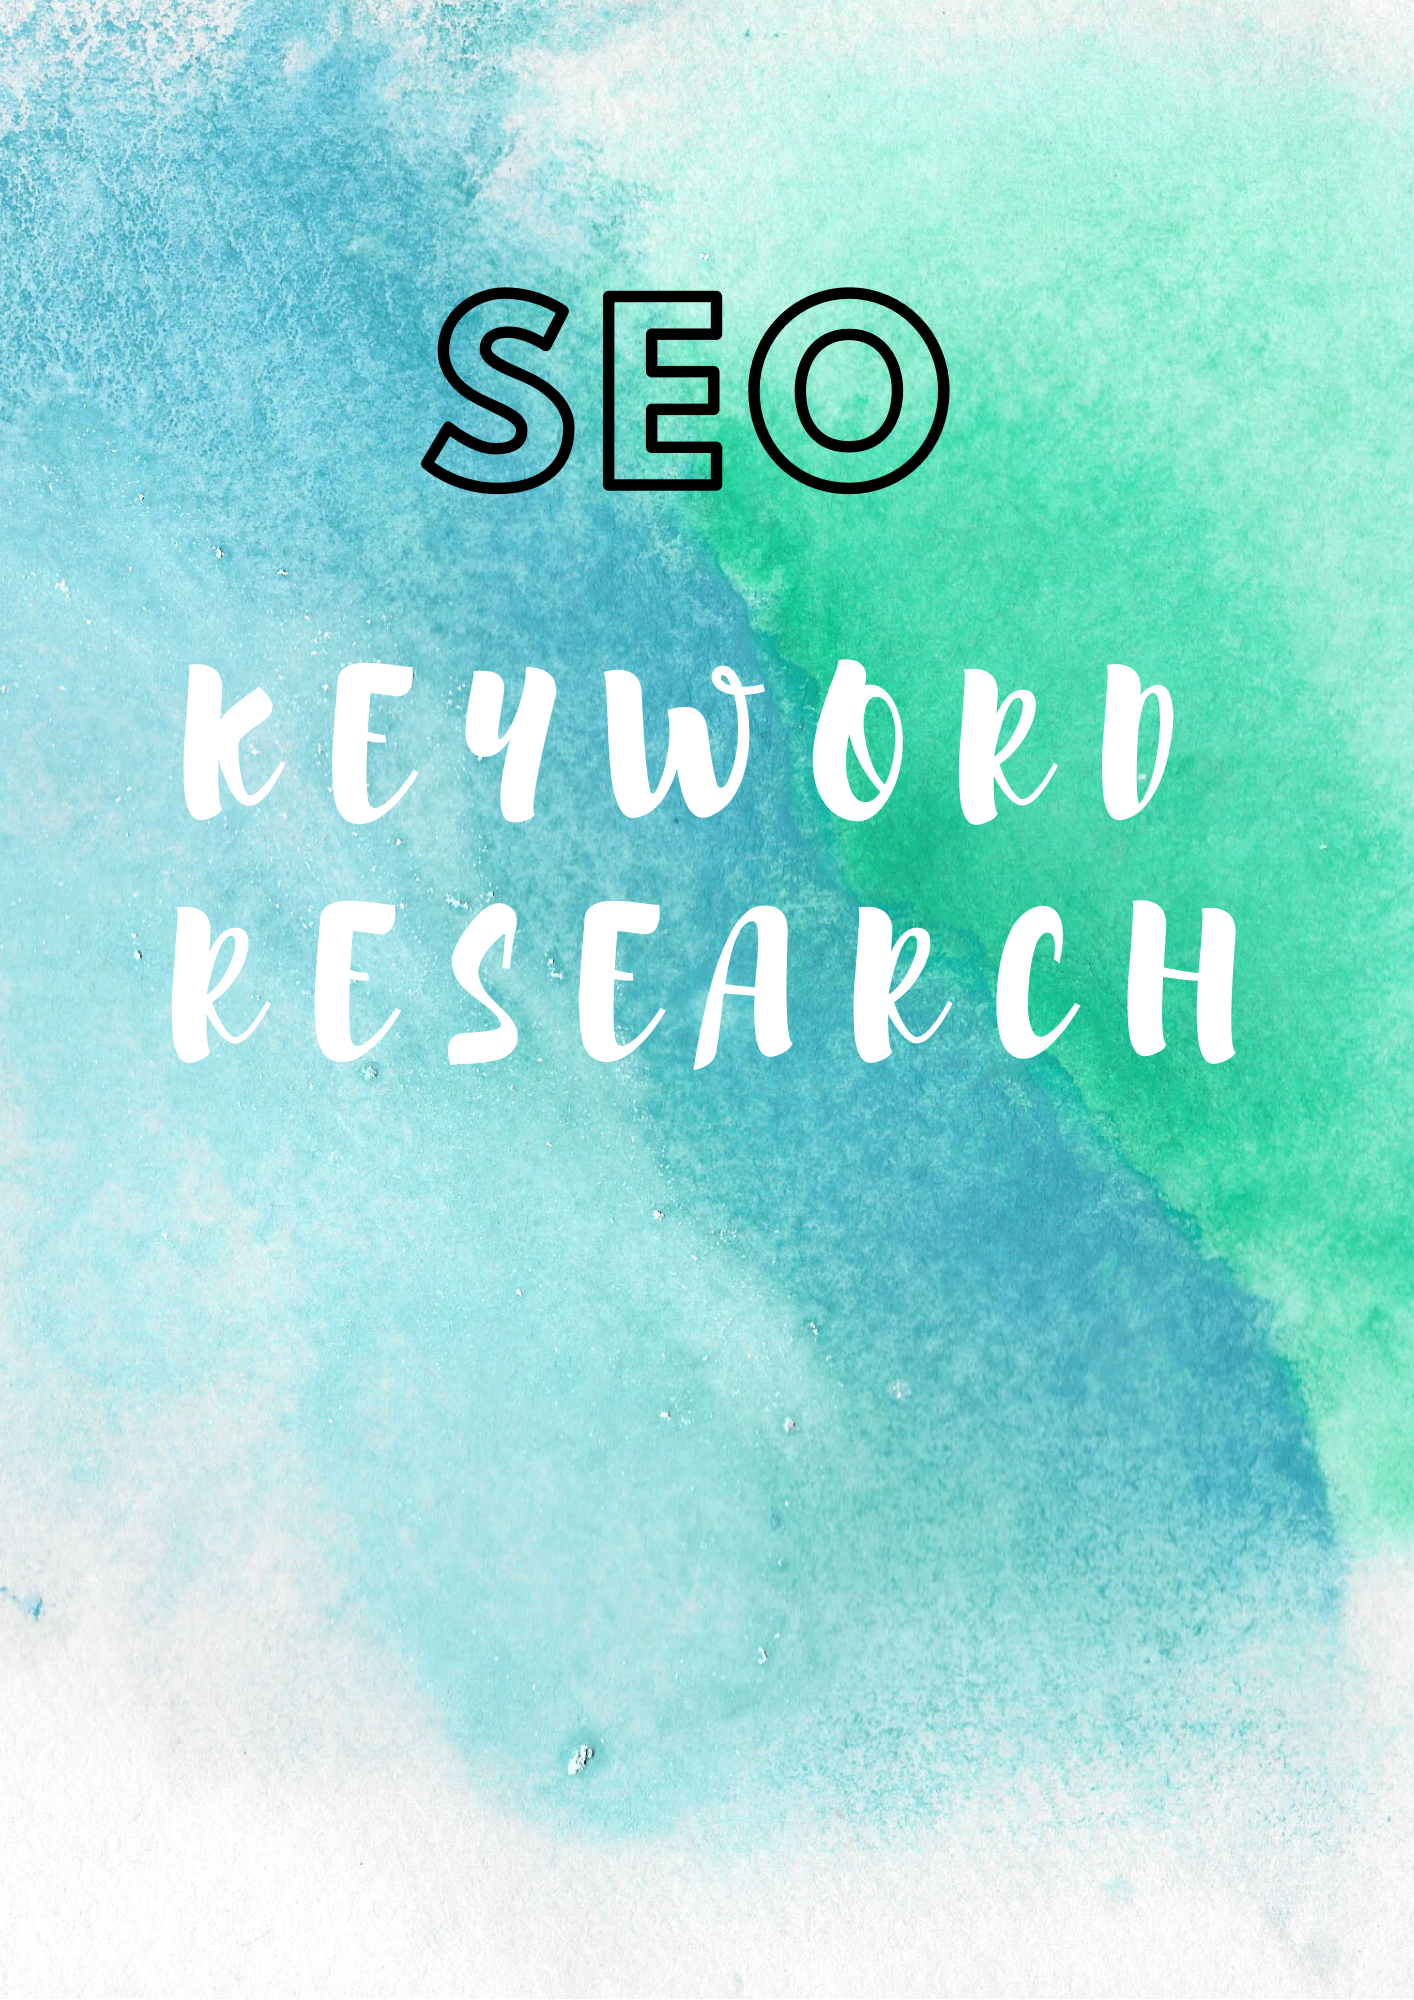 I will do seo keyword research that perfectly ranks